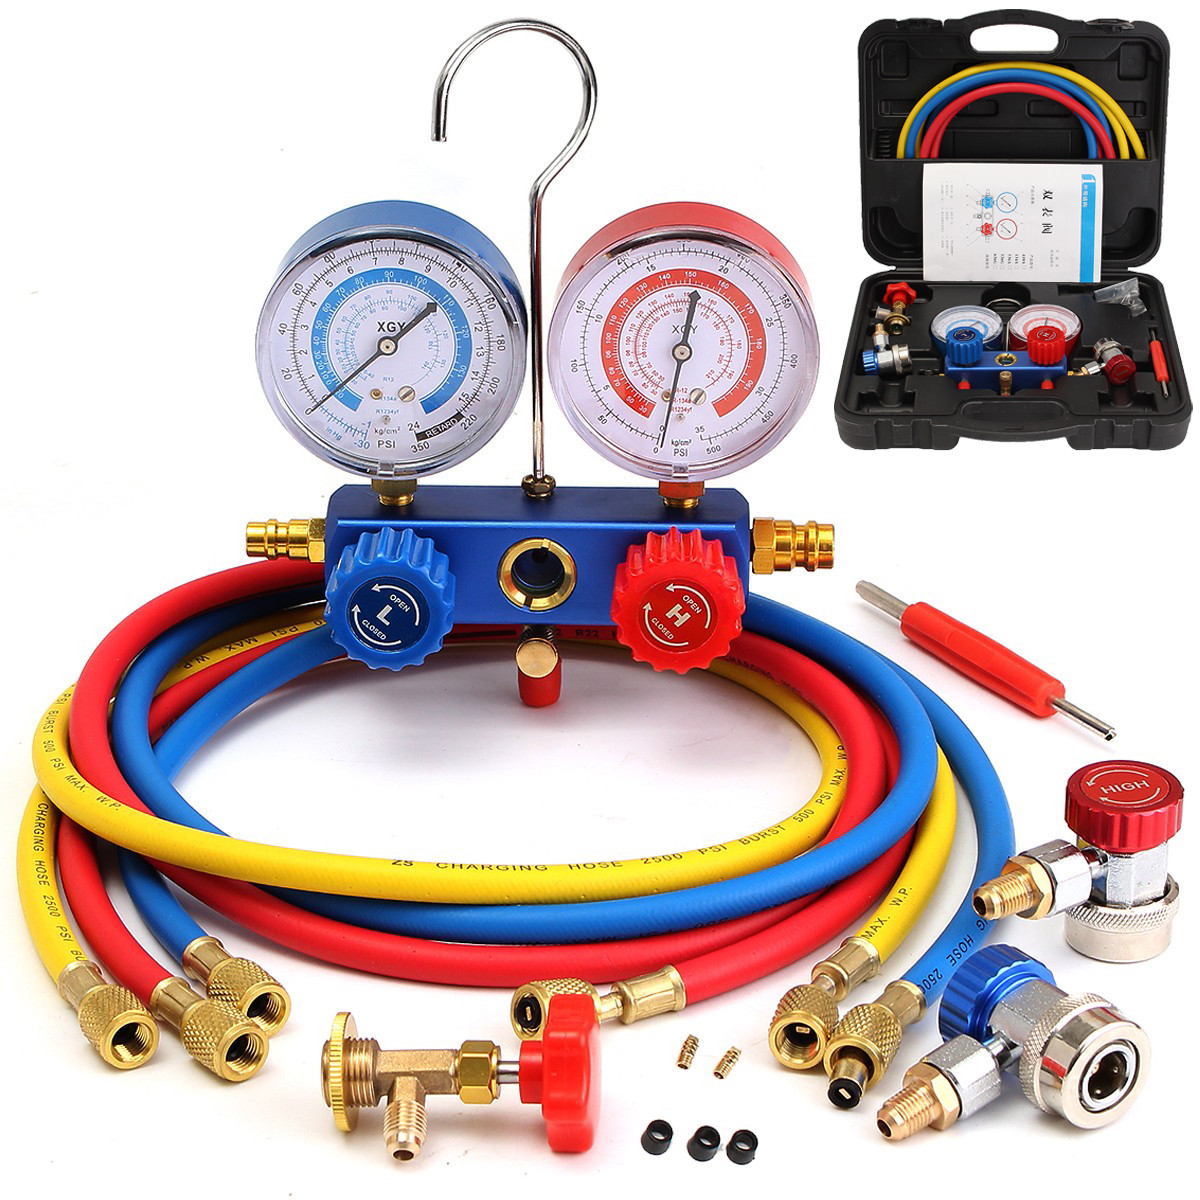 R134A HVAC A/C Refrigeration Kit Manifold Gauge Set R22 R12 R134A Auto Refrigerant H/L Car Air Conditioning Repair Tool Gauge car air conditioning refrigeration pressure test gauge r134a at2217